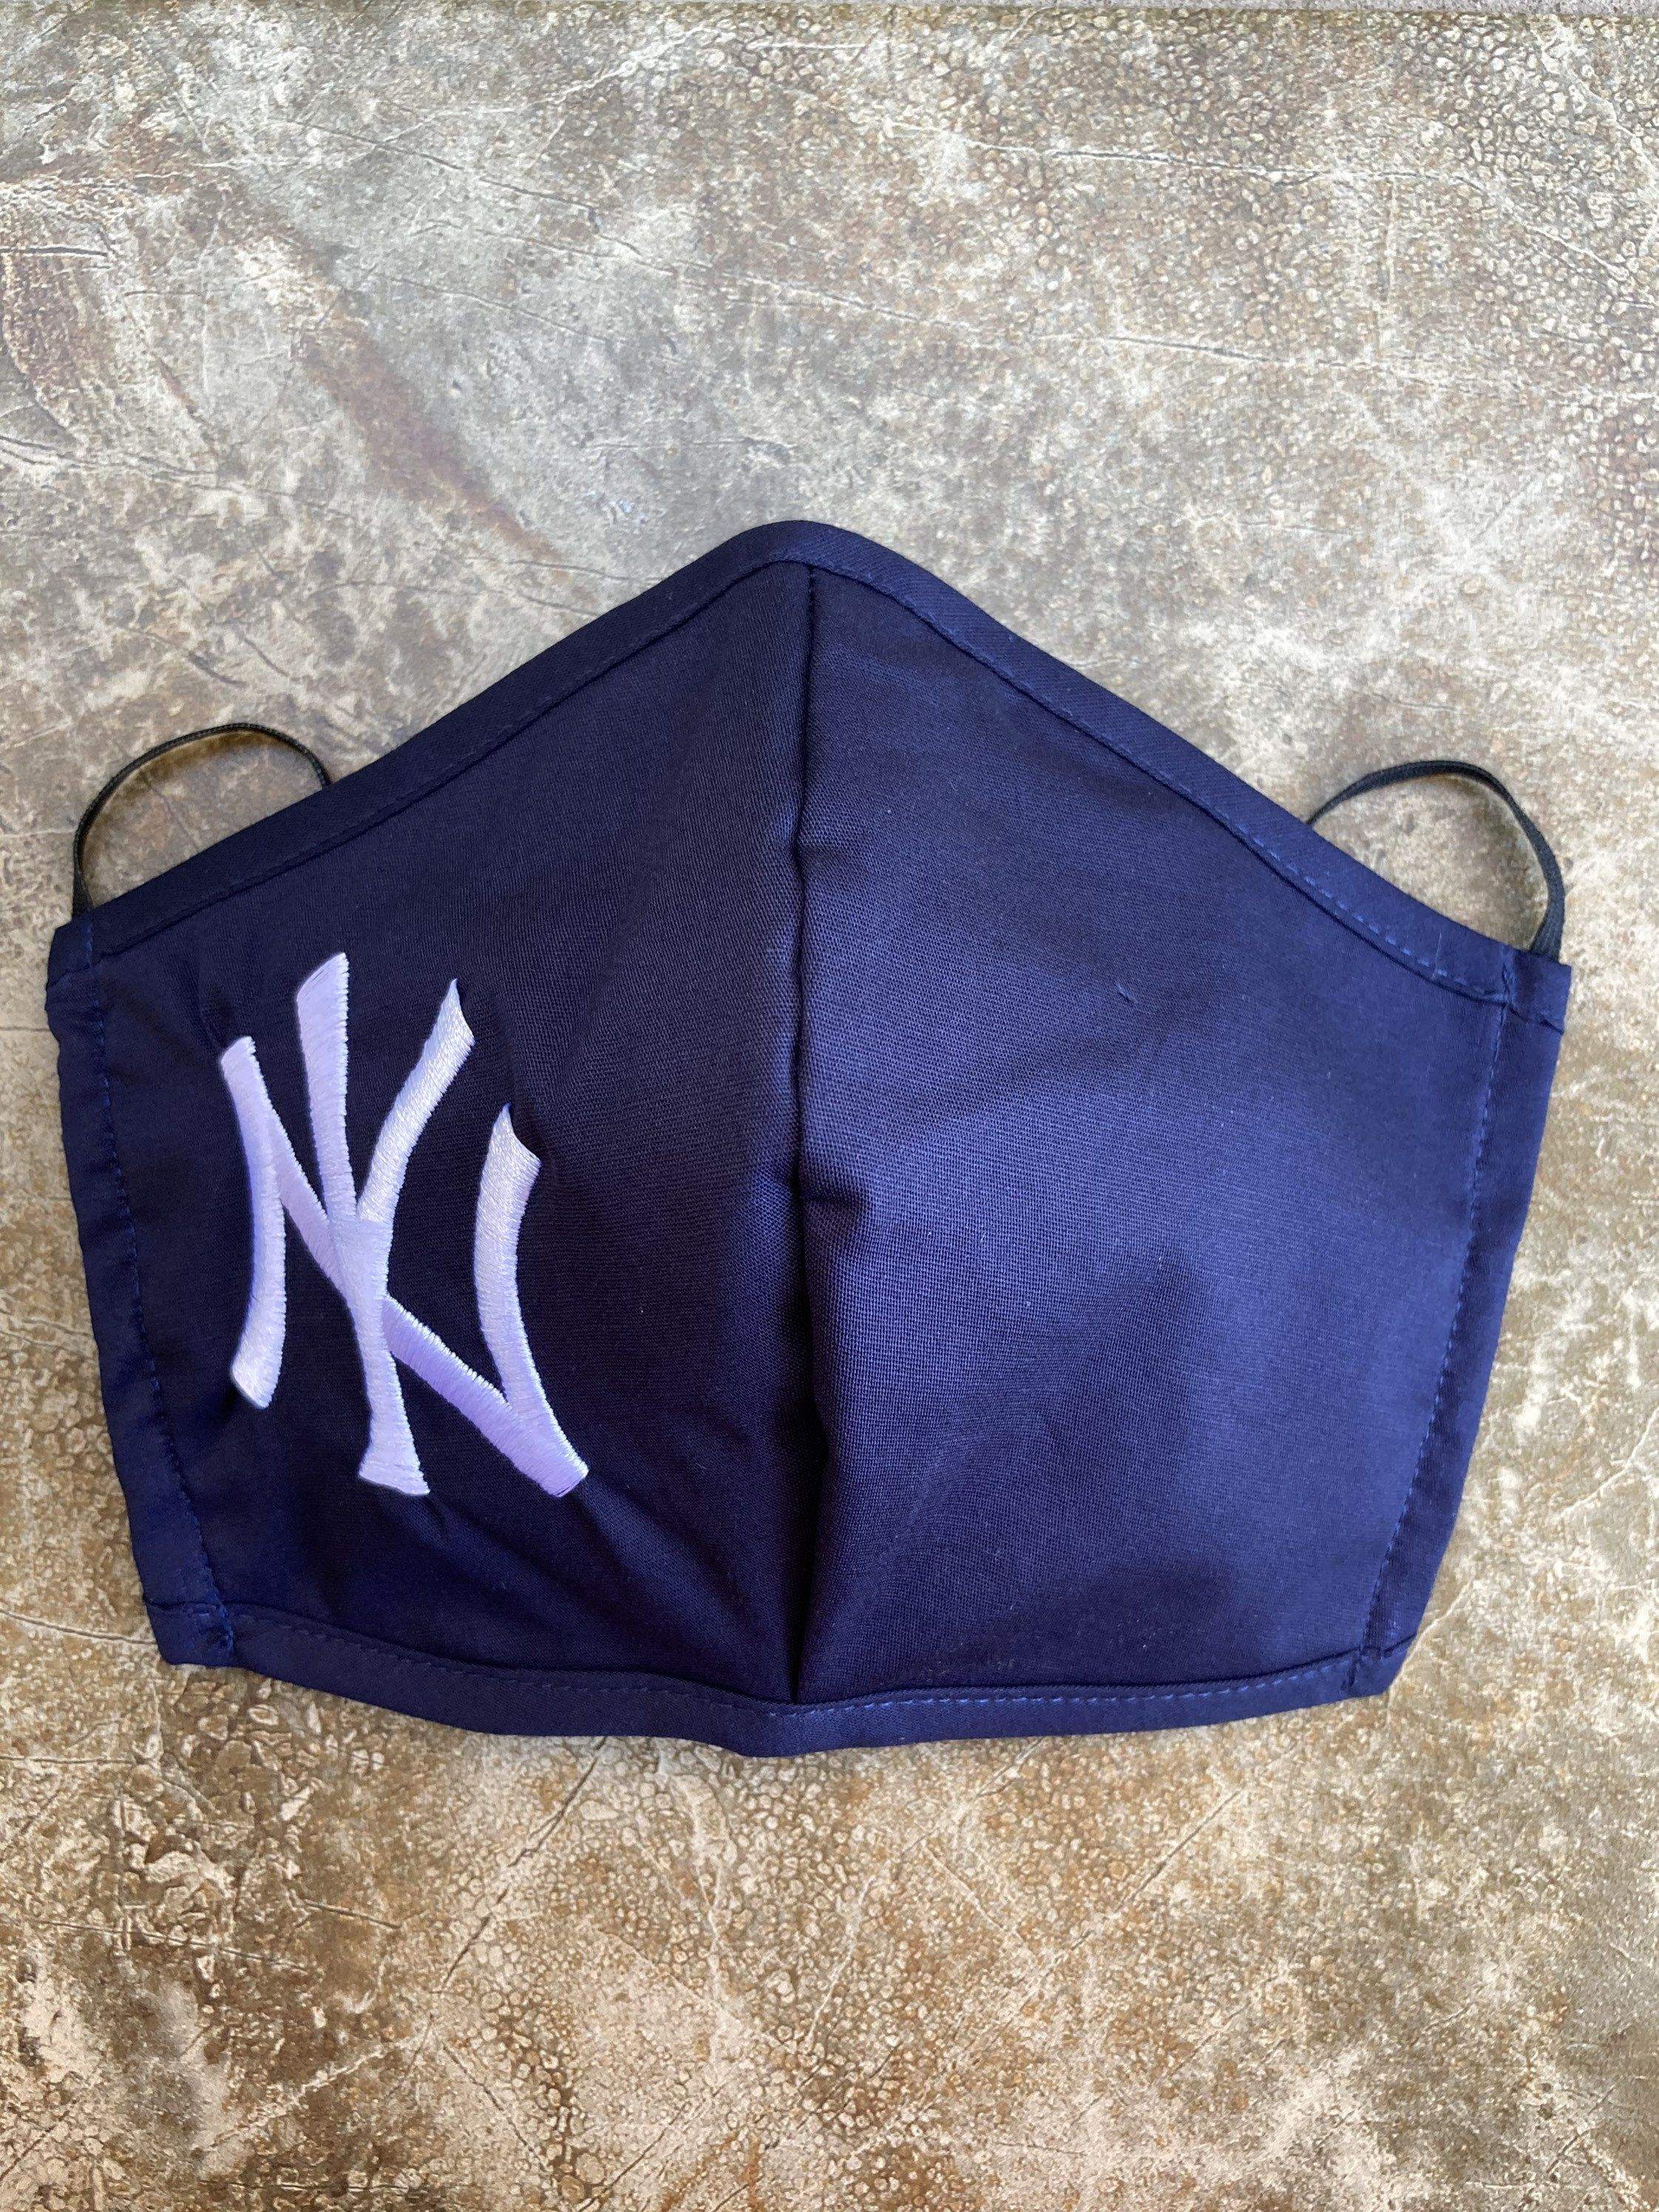 Yankees Face Mask Embroidered Mask Adult Size Fits Most Thin Elastic Handmade In Usa Ready To Ship In 2020 Face Mask Blue Mask Embroidered